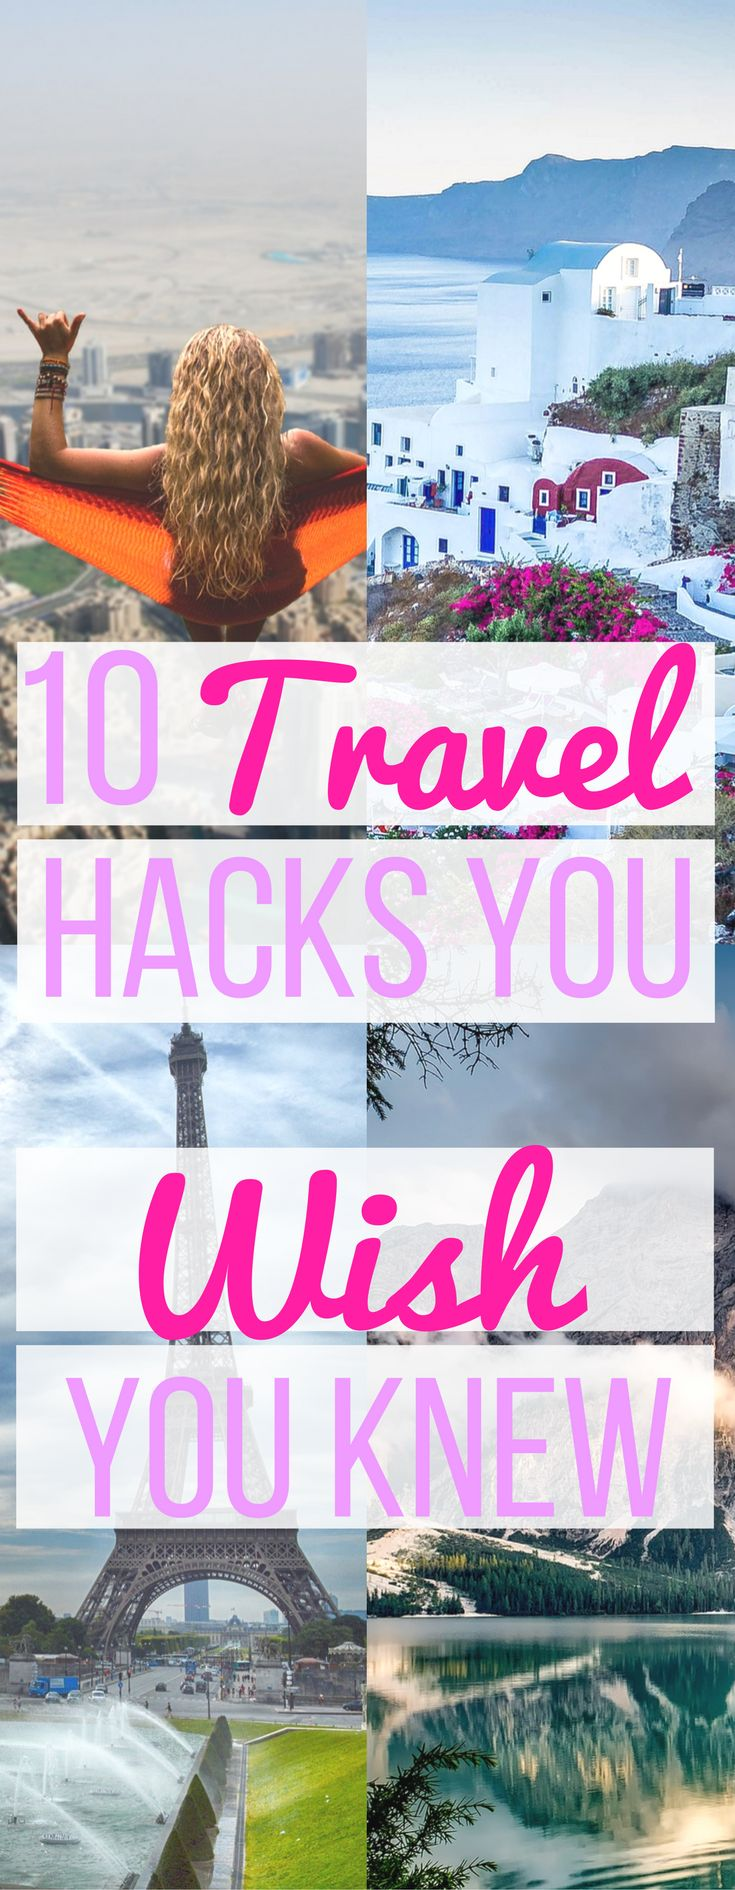 Repin for later - 10 Travel Hacks Everyone Should Know! - Hint Hacks